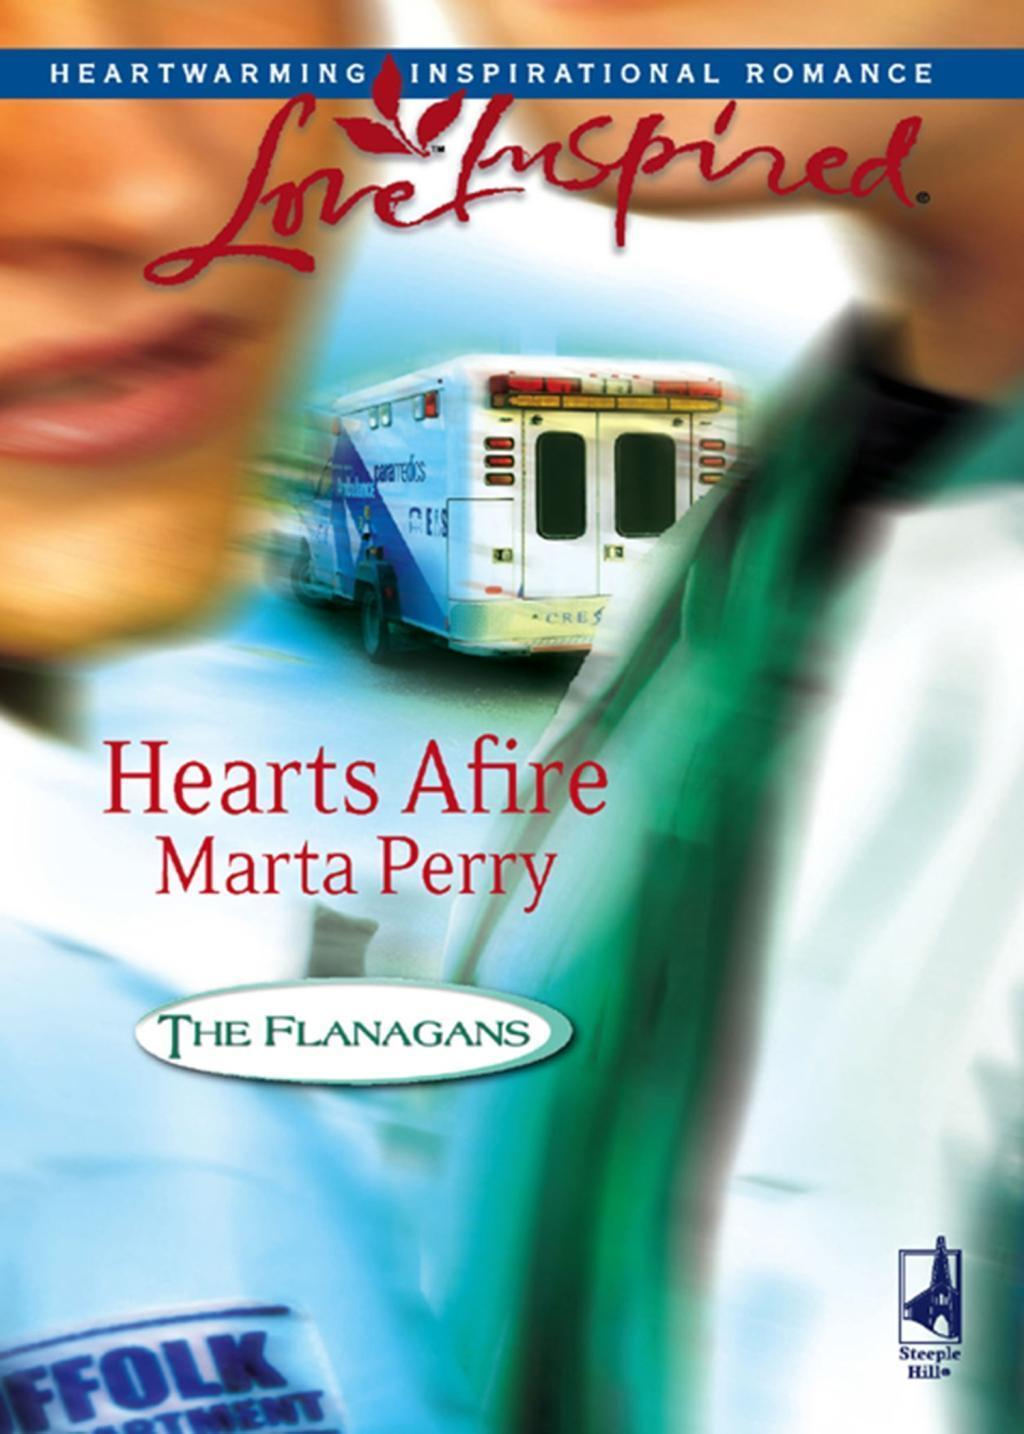 Hearts Afire (Mills & Boon Love Inspired) (The Flanagans, Book 5)